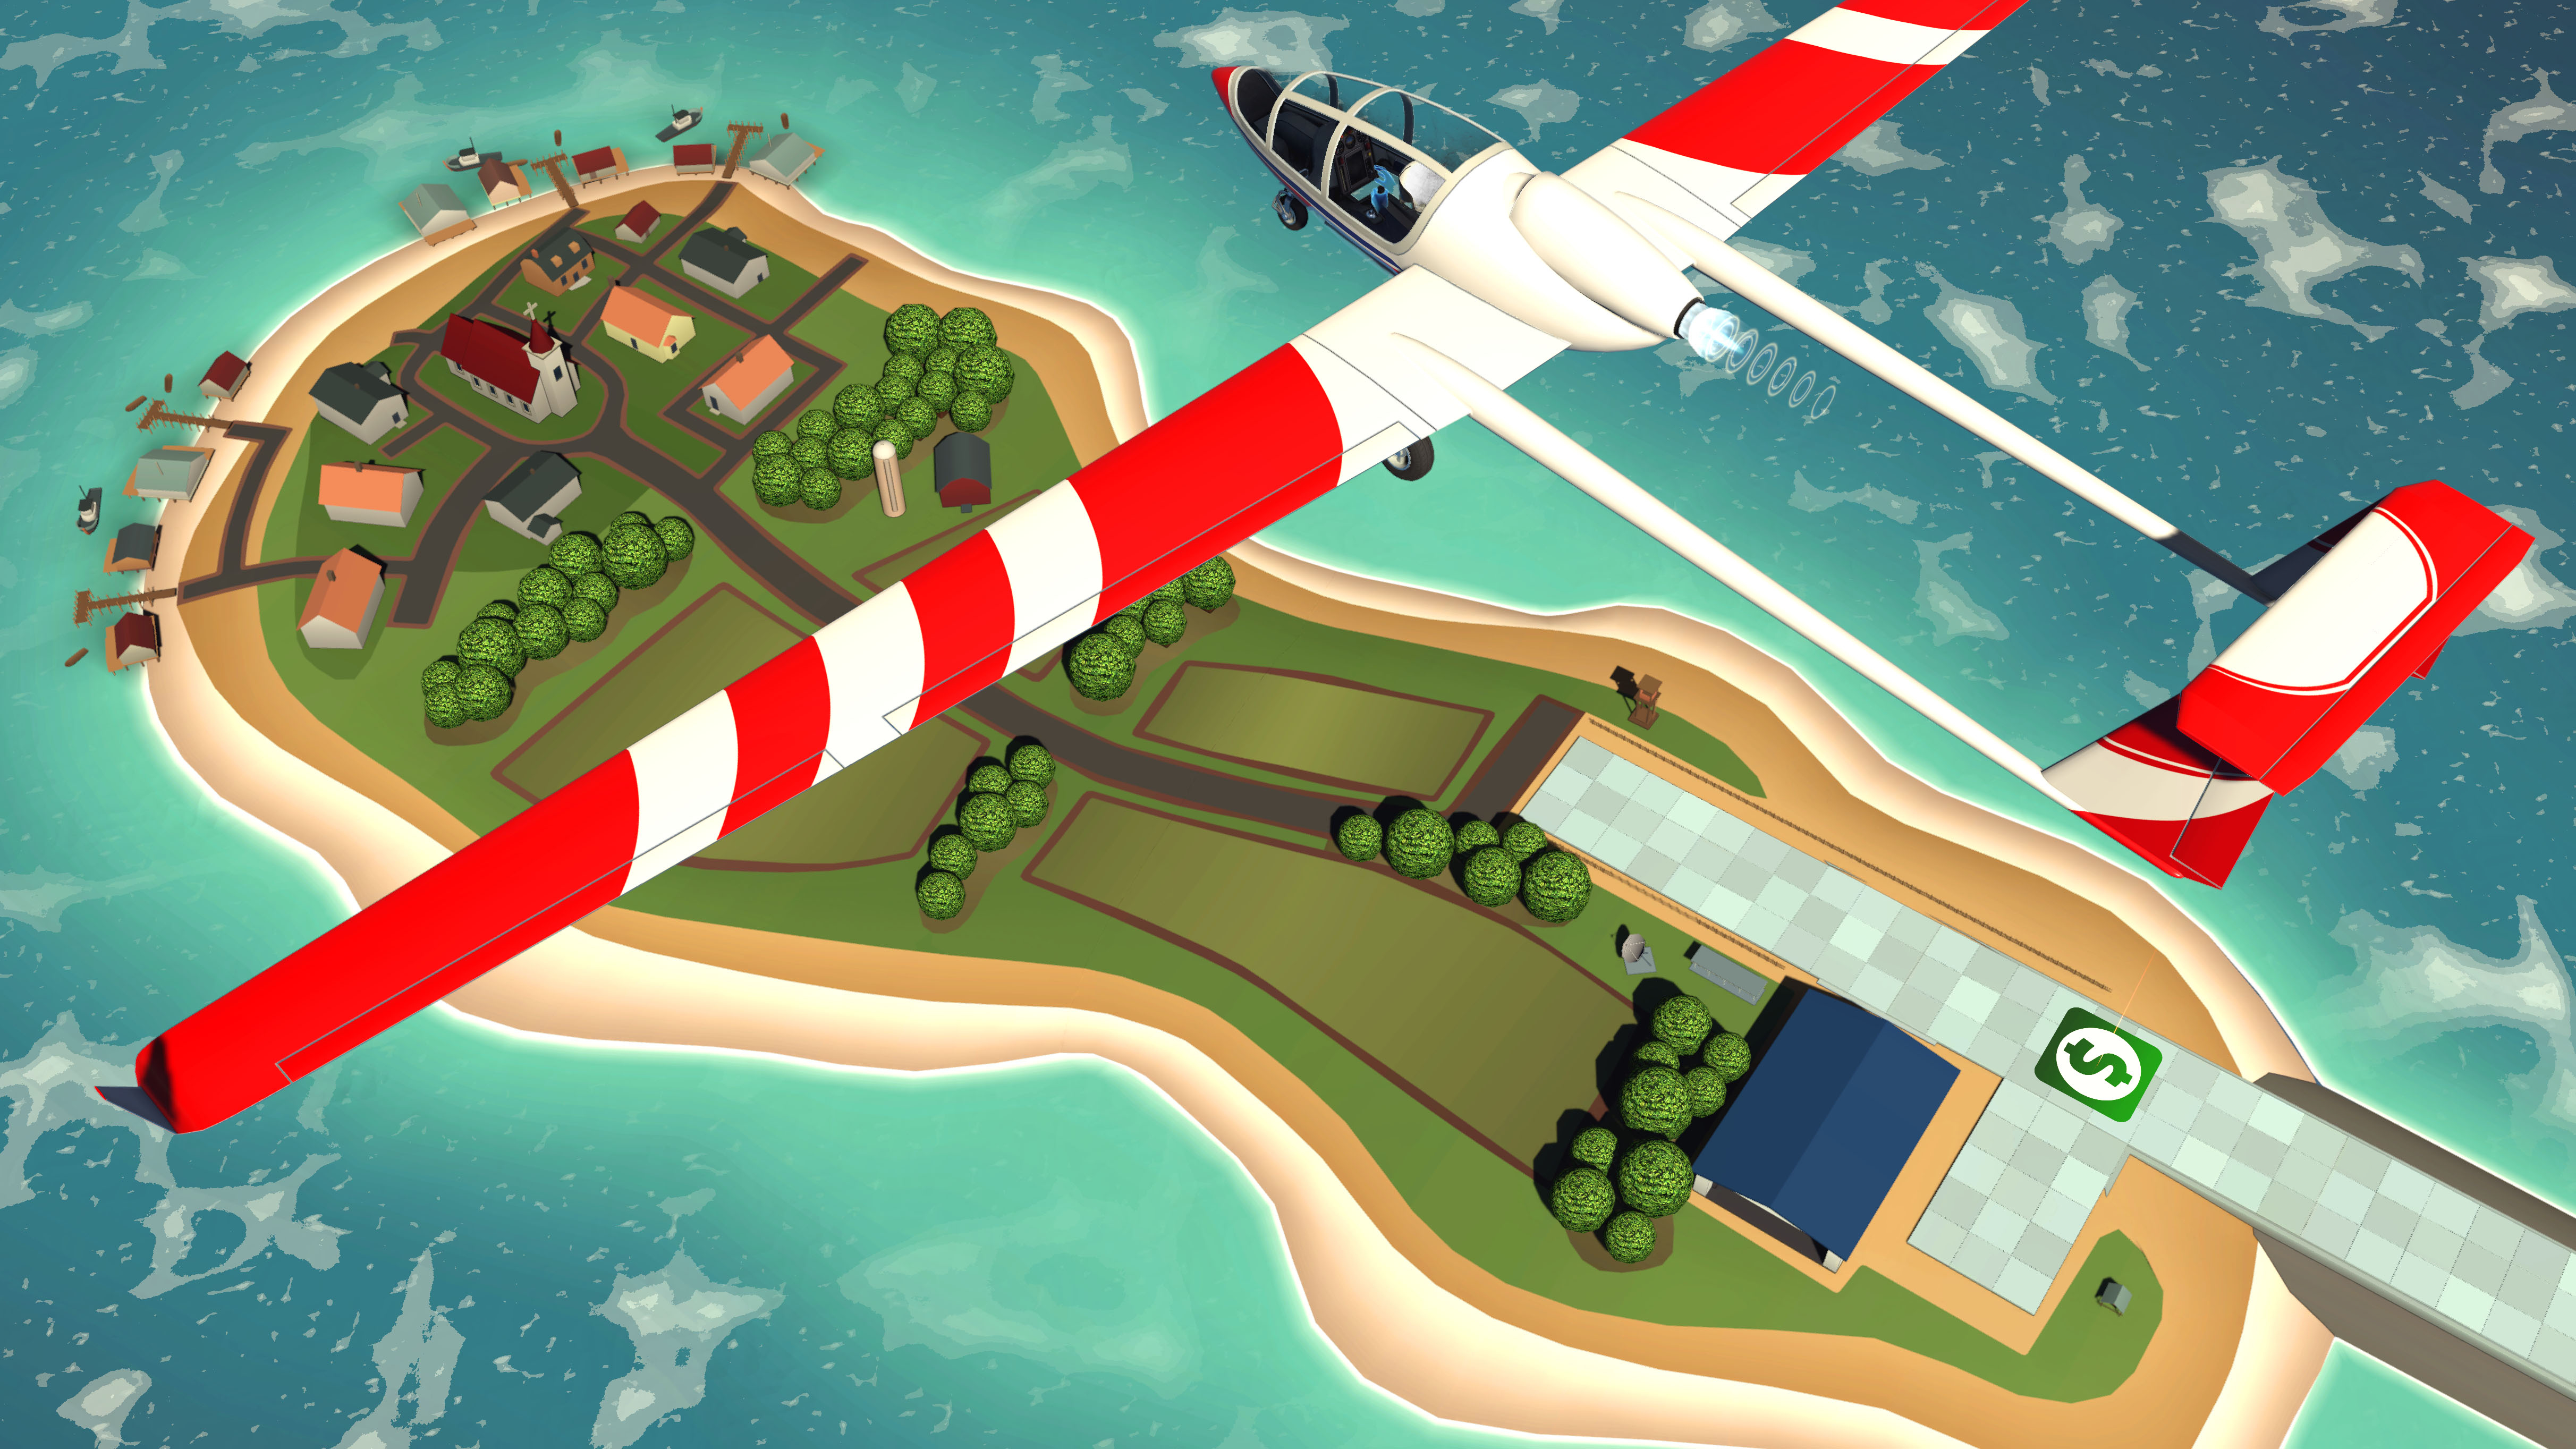 Ultrawings FLAT for PS4, PC, Switch Reviews - OpenCritic